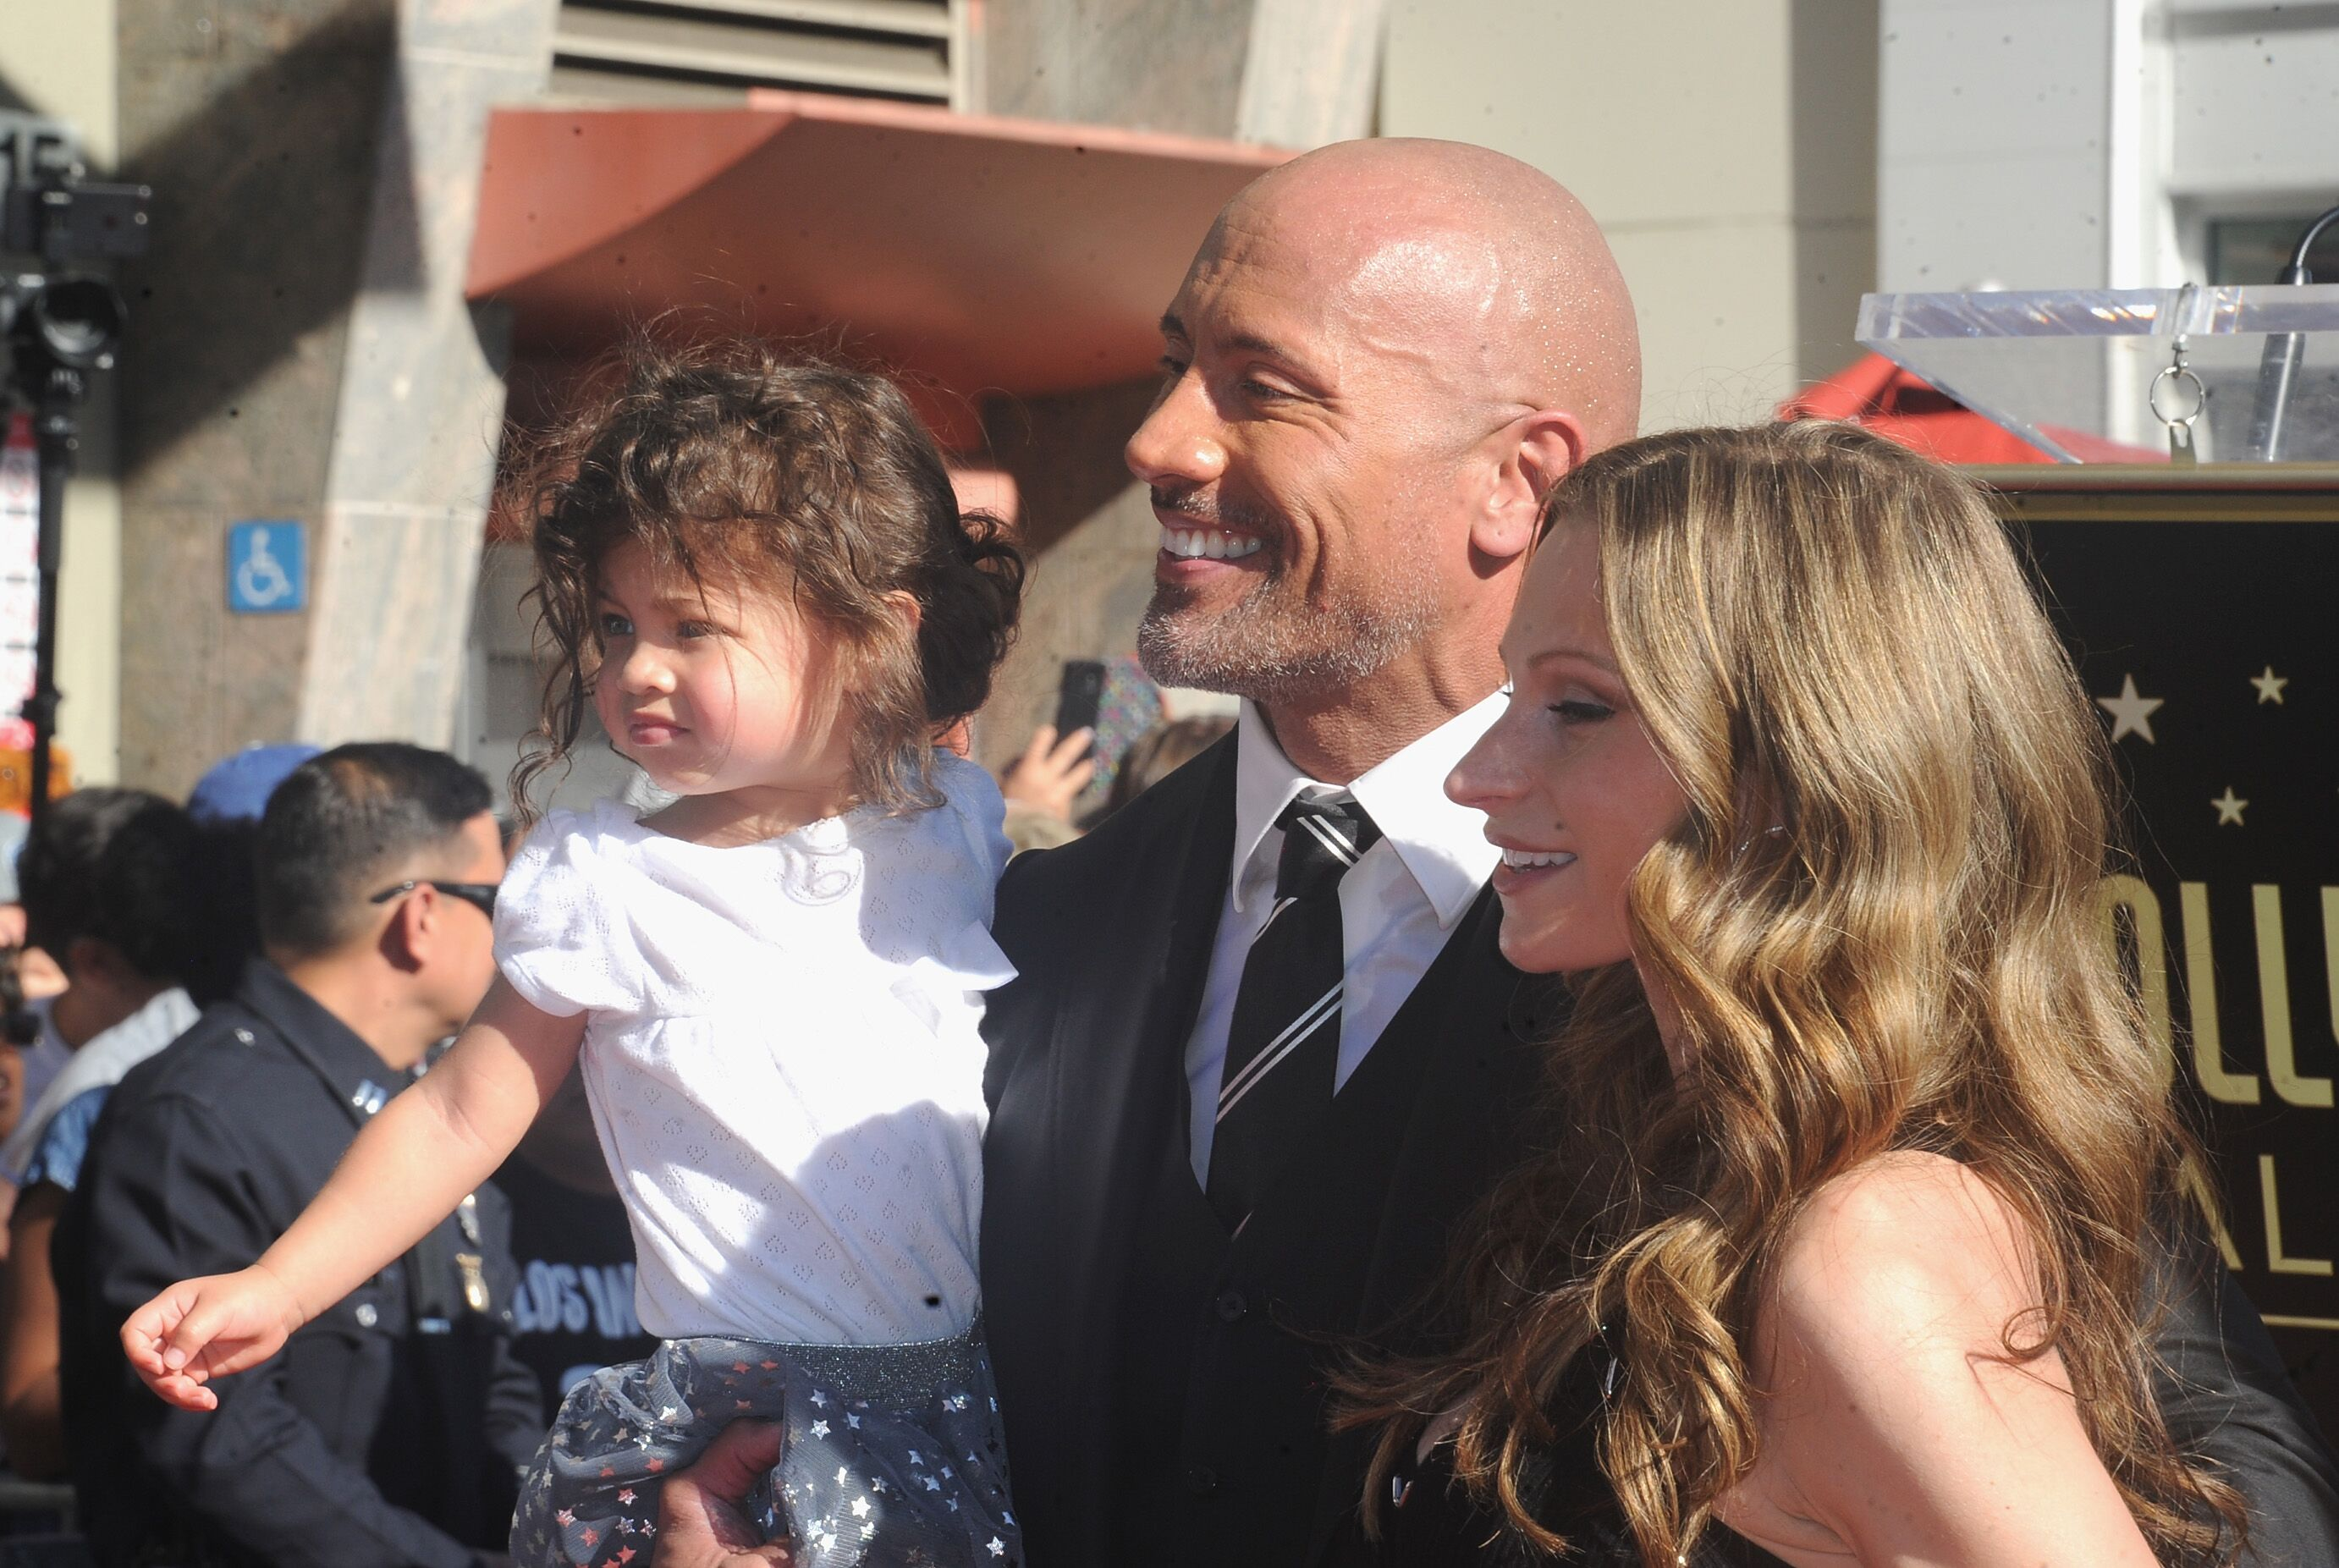 Dwayne Johnson, Jasmine Johnson, and Lauren Hashian at the Dwayne Johnson Star Ceremony. | Source: Getty Images